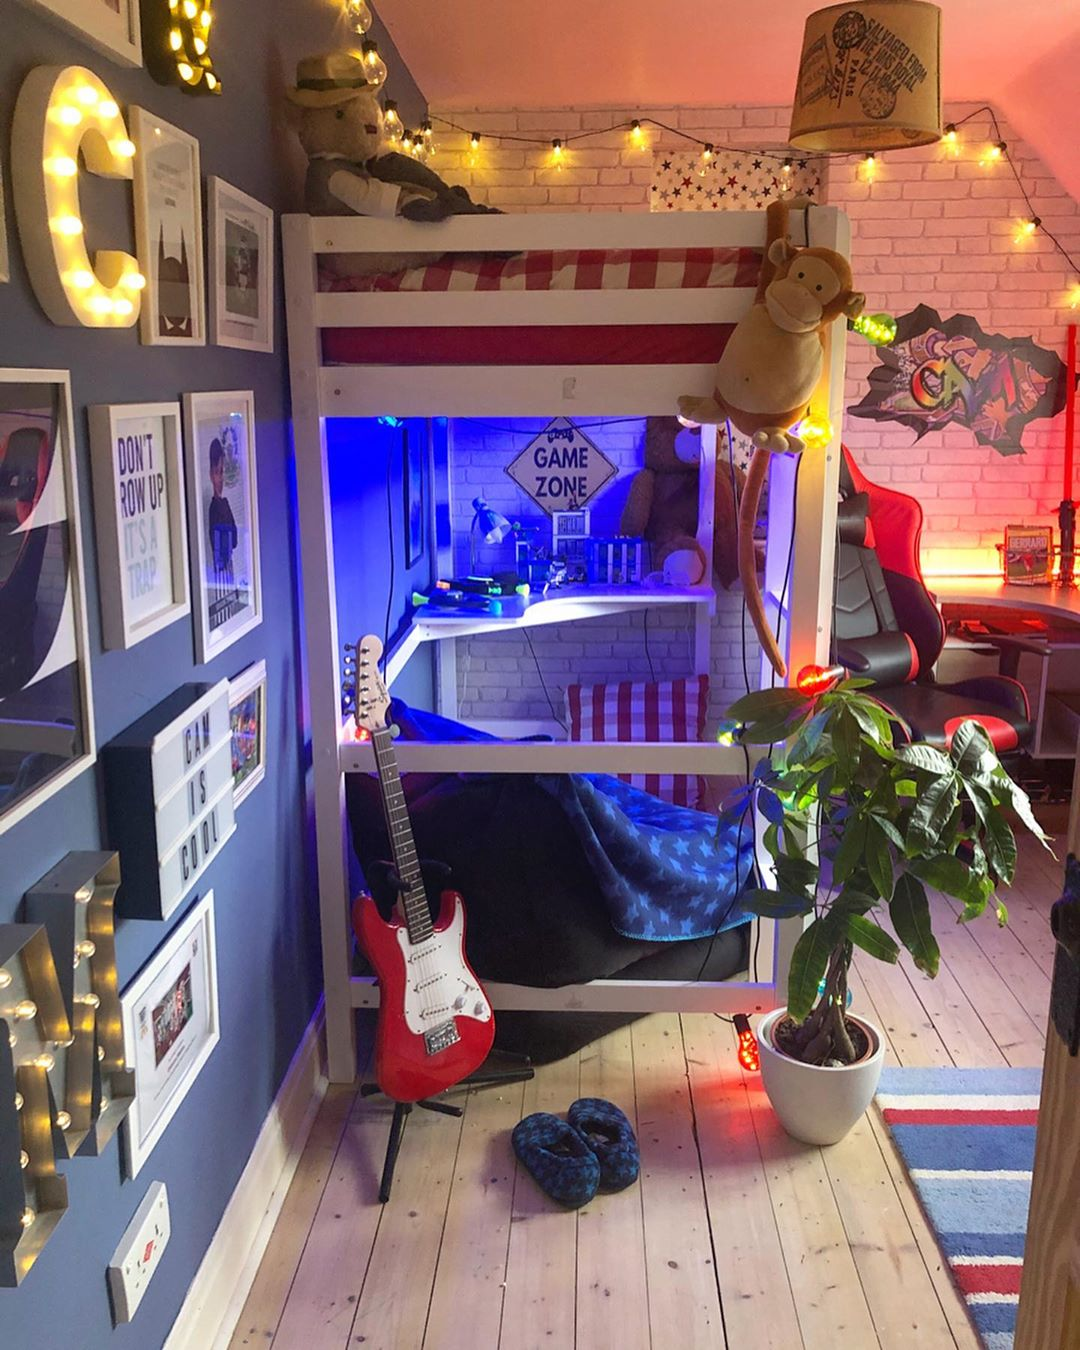 27-bedroom-ideas-that-are-great-for-your-kids-2020